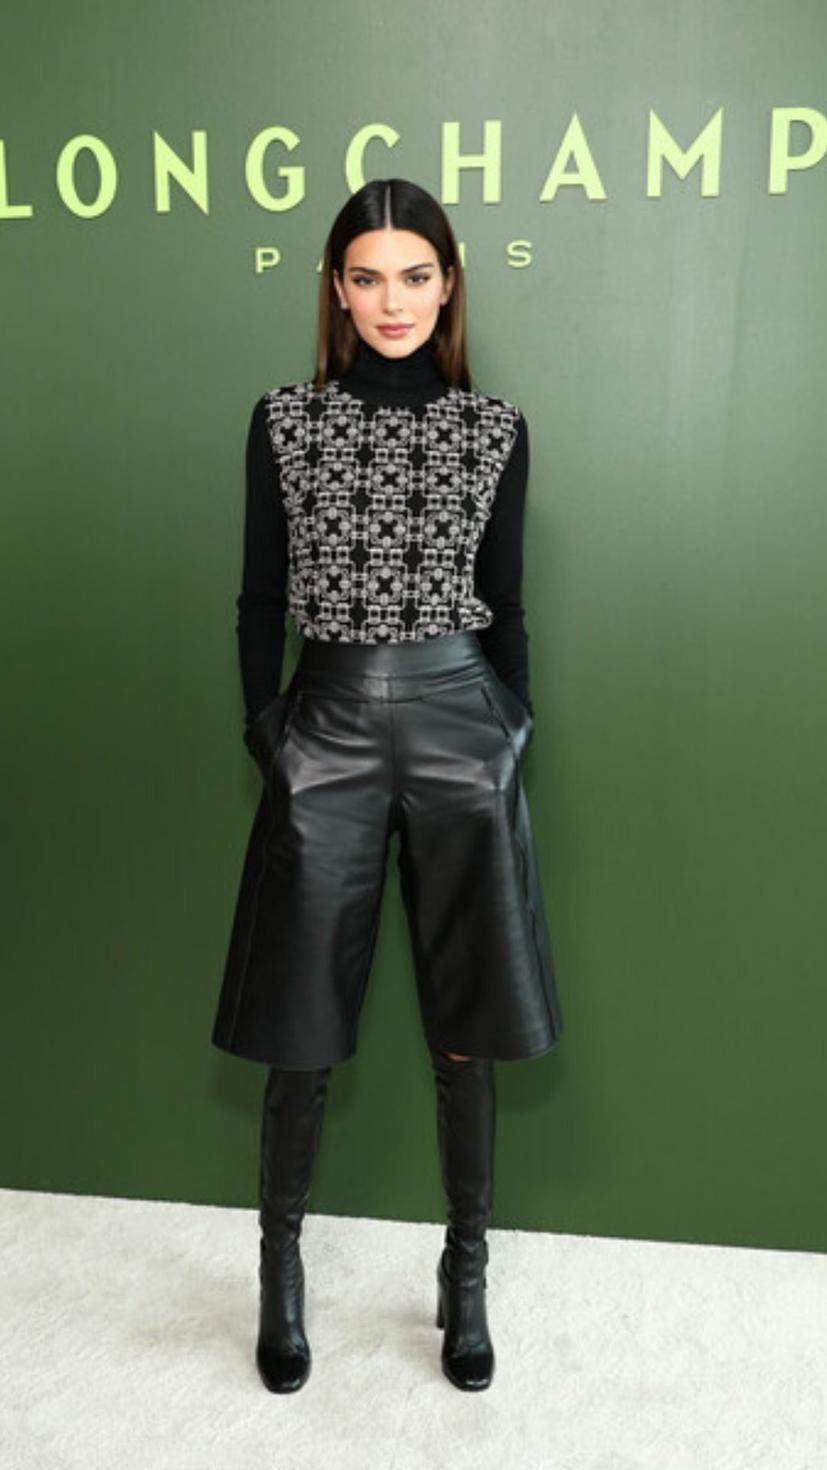 Kendall Jenner attending Longchamp show with Lonchamp full outfit